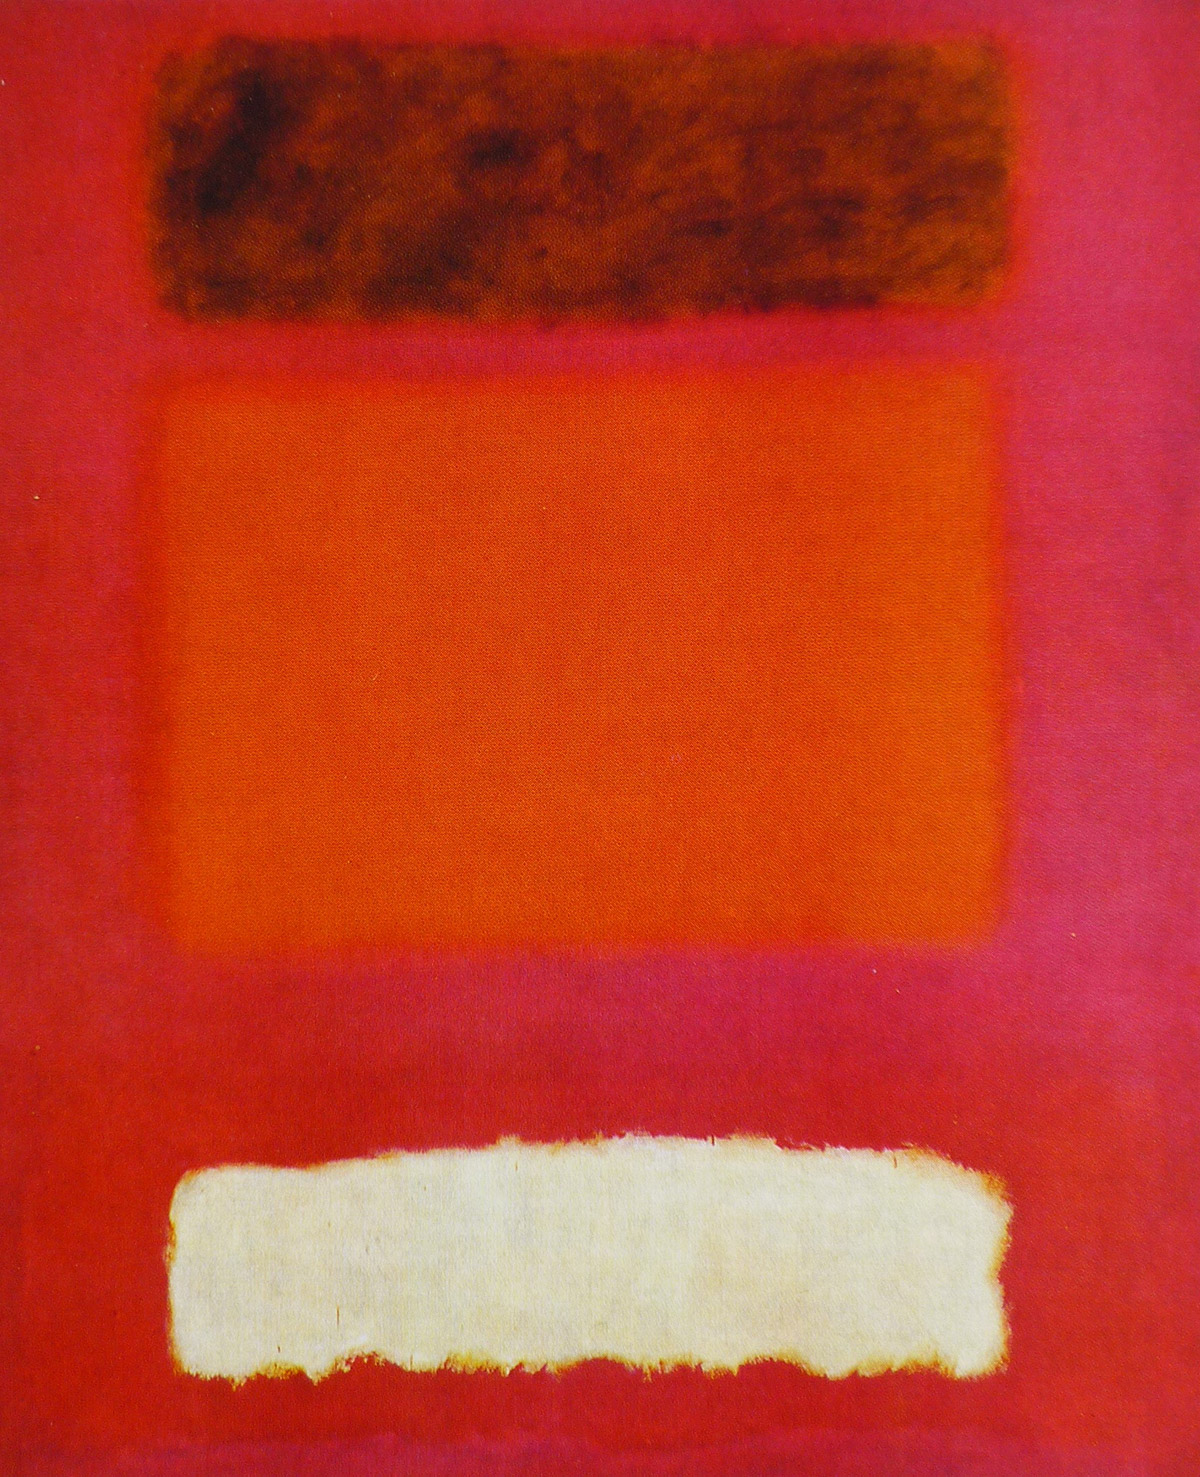 Abstract painting by Marc Rothko